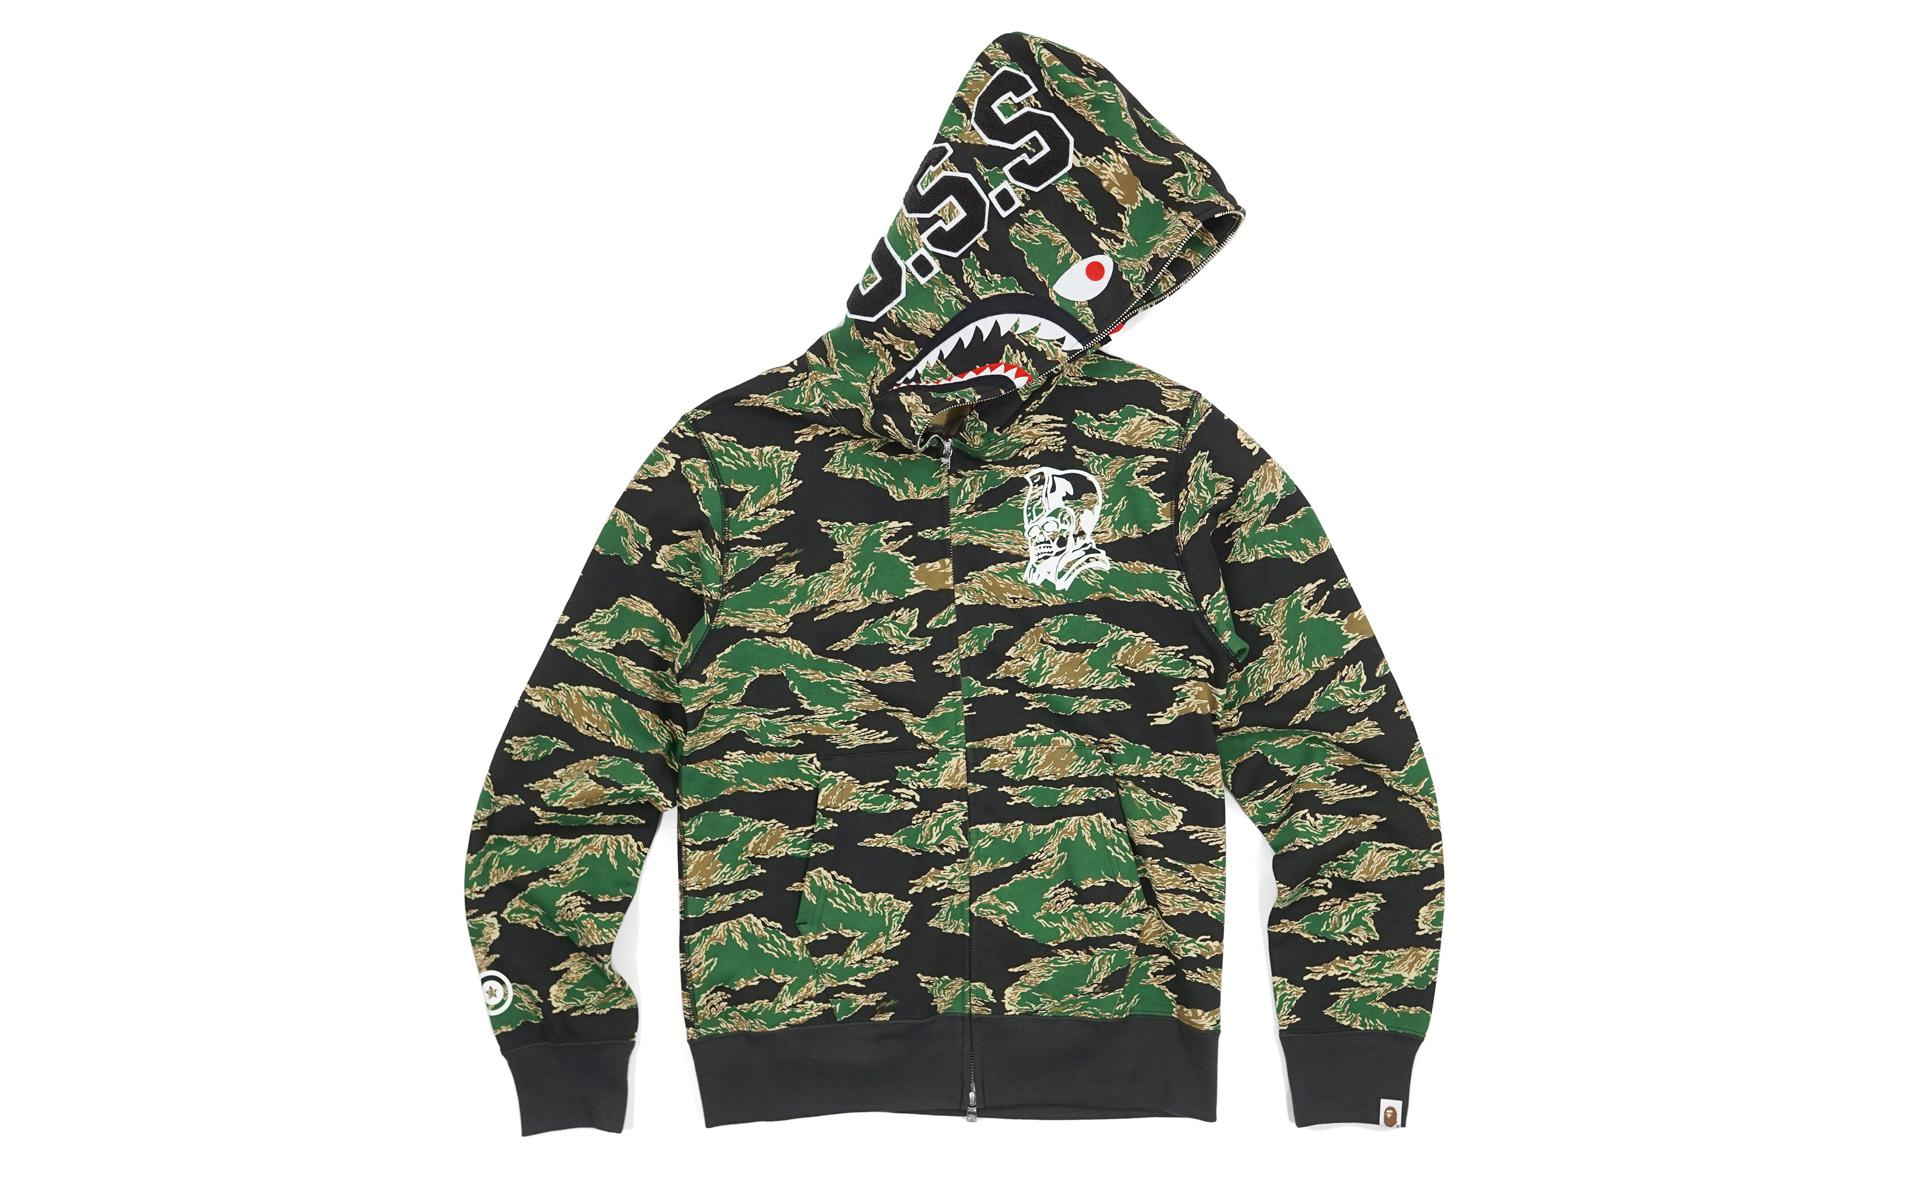 771ff8c7a50f Lyst - A Bathing Ape Ursus Tiger Camo Shark Green in Green for Men